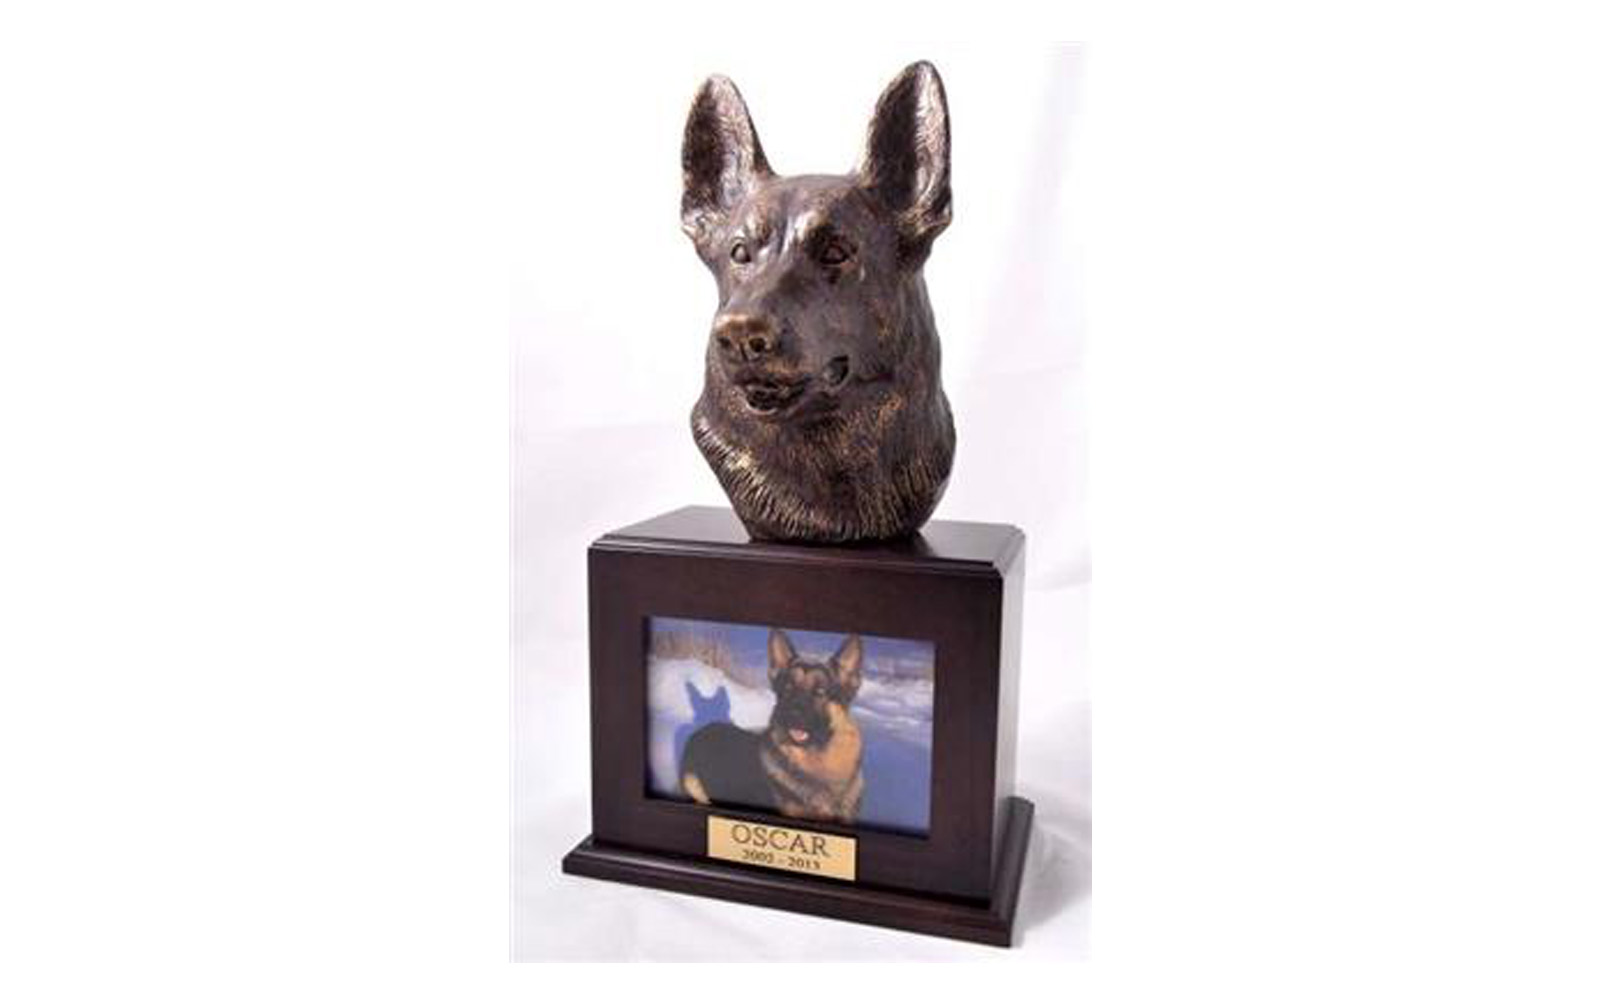 """German Shepherd Picture Urn Walnut   This photo urn features a sculpted German Shepherd set on genuine Walnut wood urn. The sculpture is made of polymer with a bronze additive.  Measures 9"""" W x 6"""" D x 16"""" H and holds 110 cubic inches, up to 110 lbs. The sculpture measures 6"""" W x 8"""" D x 9"""" H.,   $265  with name plate     $240  without name plate"""